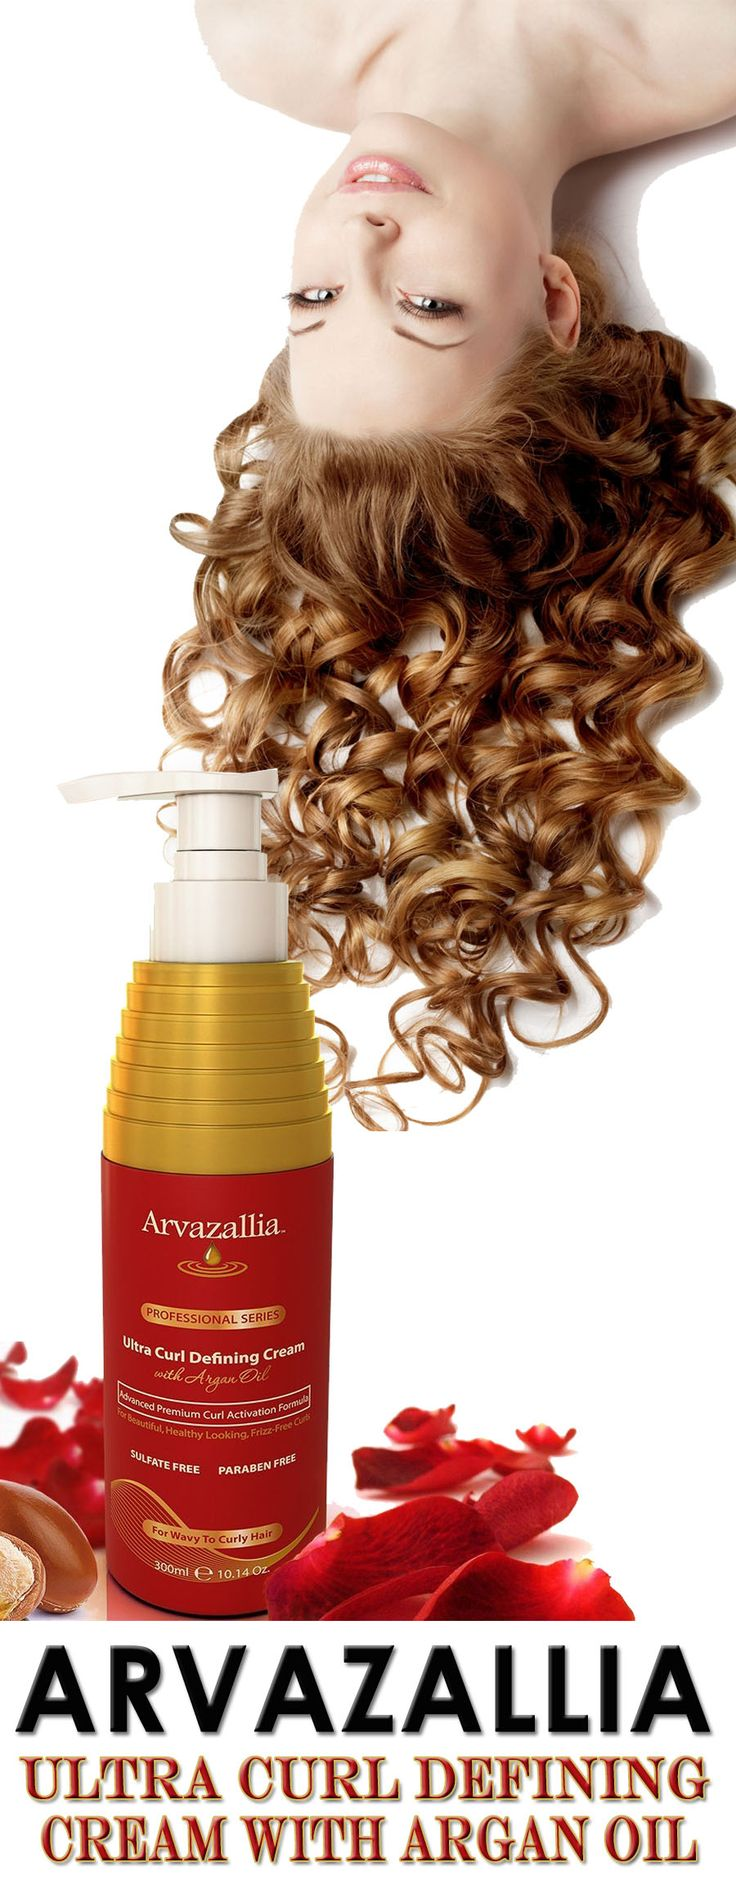 Arvazallia Ultra Curl Defining Cream with Argan Oil is Guaranteed to Give You Beautiful, Soft, Natural Looking, Frizz Free Curls. Click Here Now To Learn More >> http://www.arvazallia.com/ultracurlcreampinpromo: Best Curl Products, Curl Hair Product